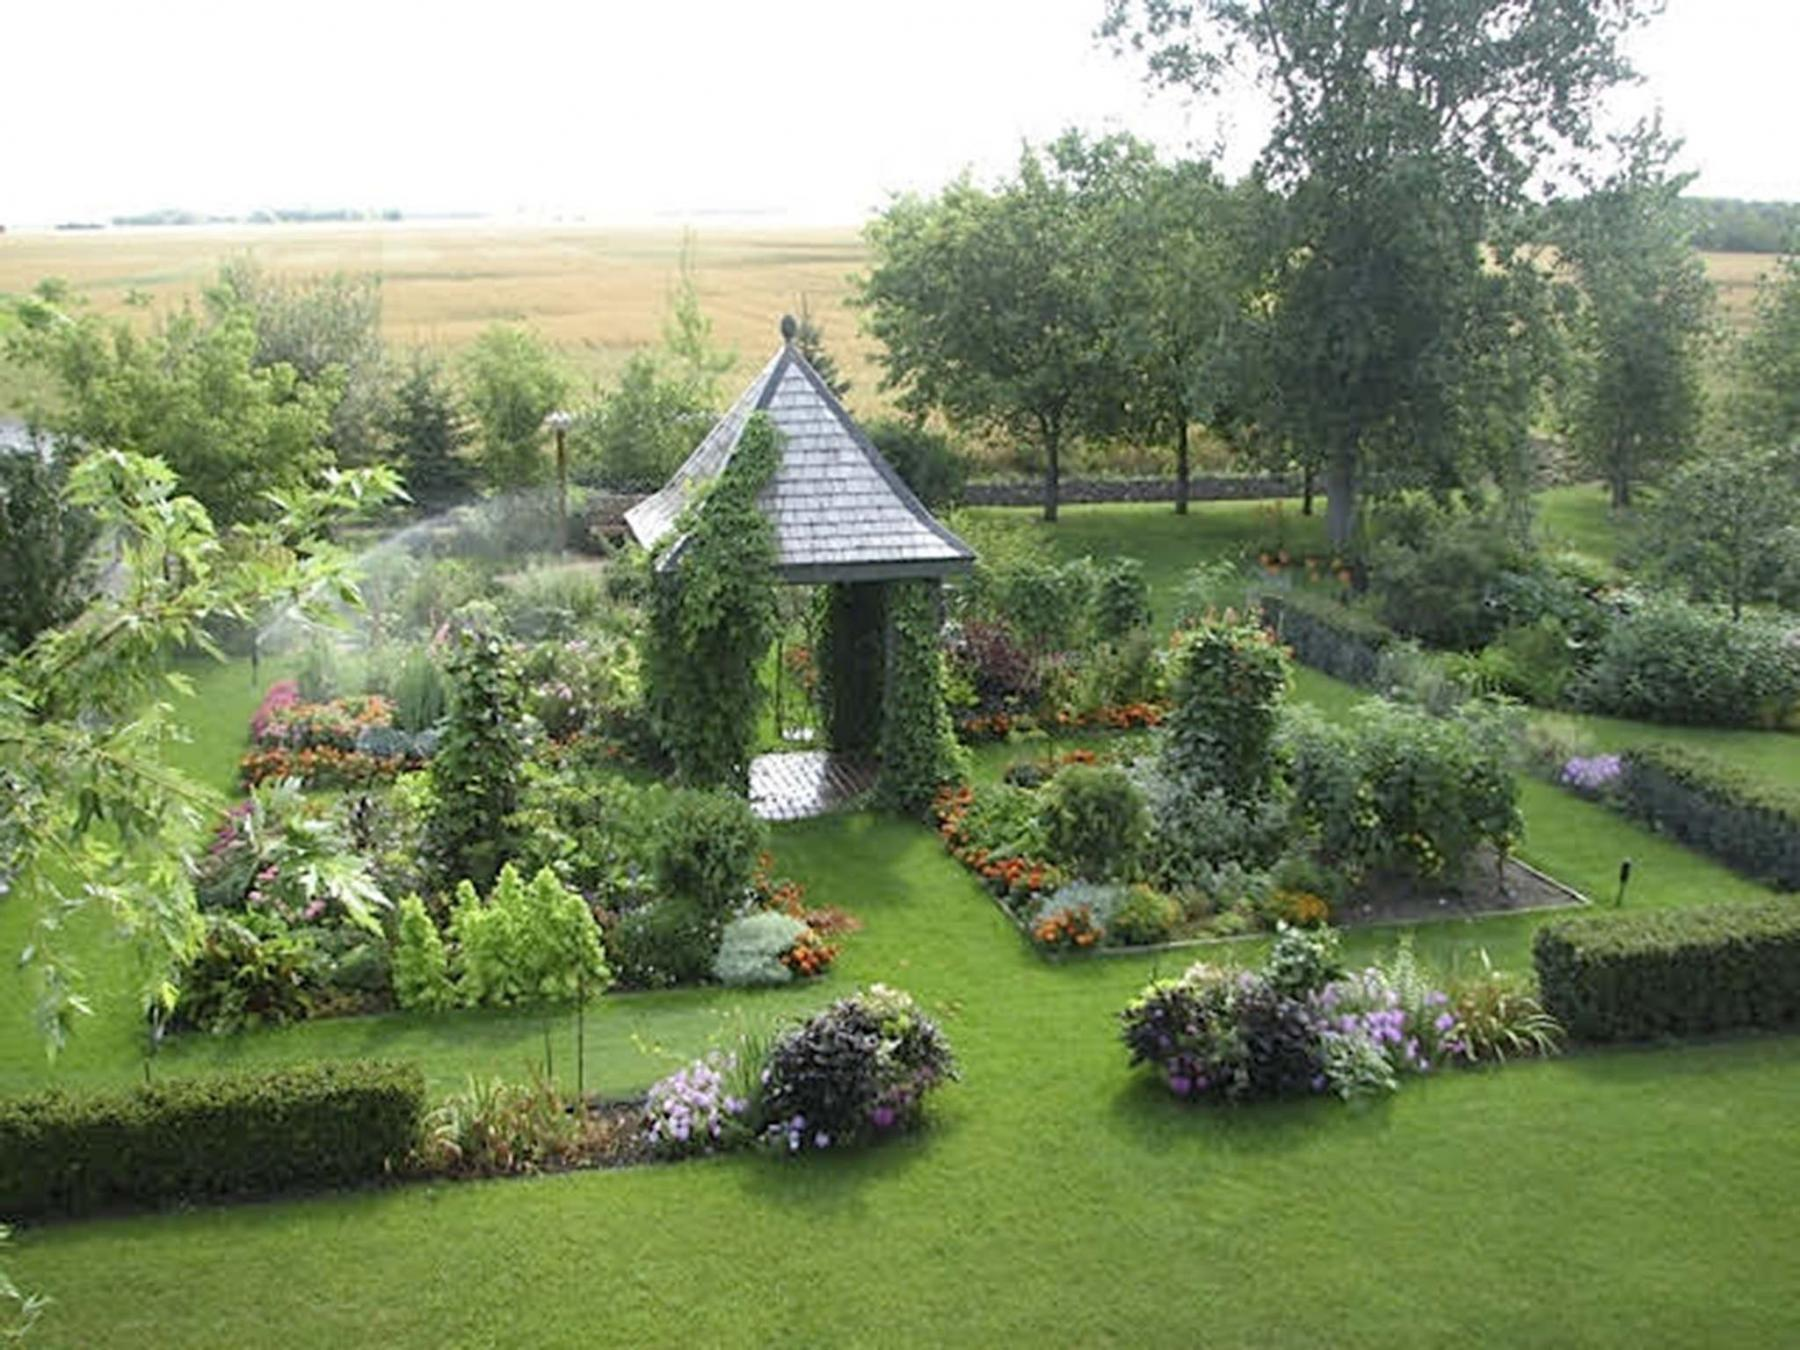 <p>A garden house sits in the centre of a parterre-like garden planted with perennials and vegetables.</p>